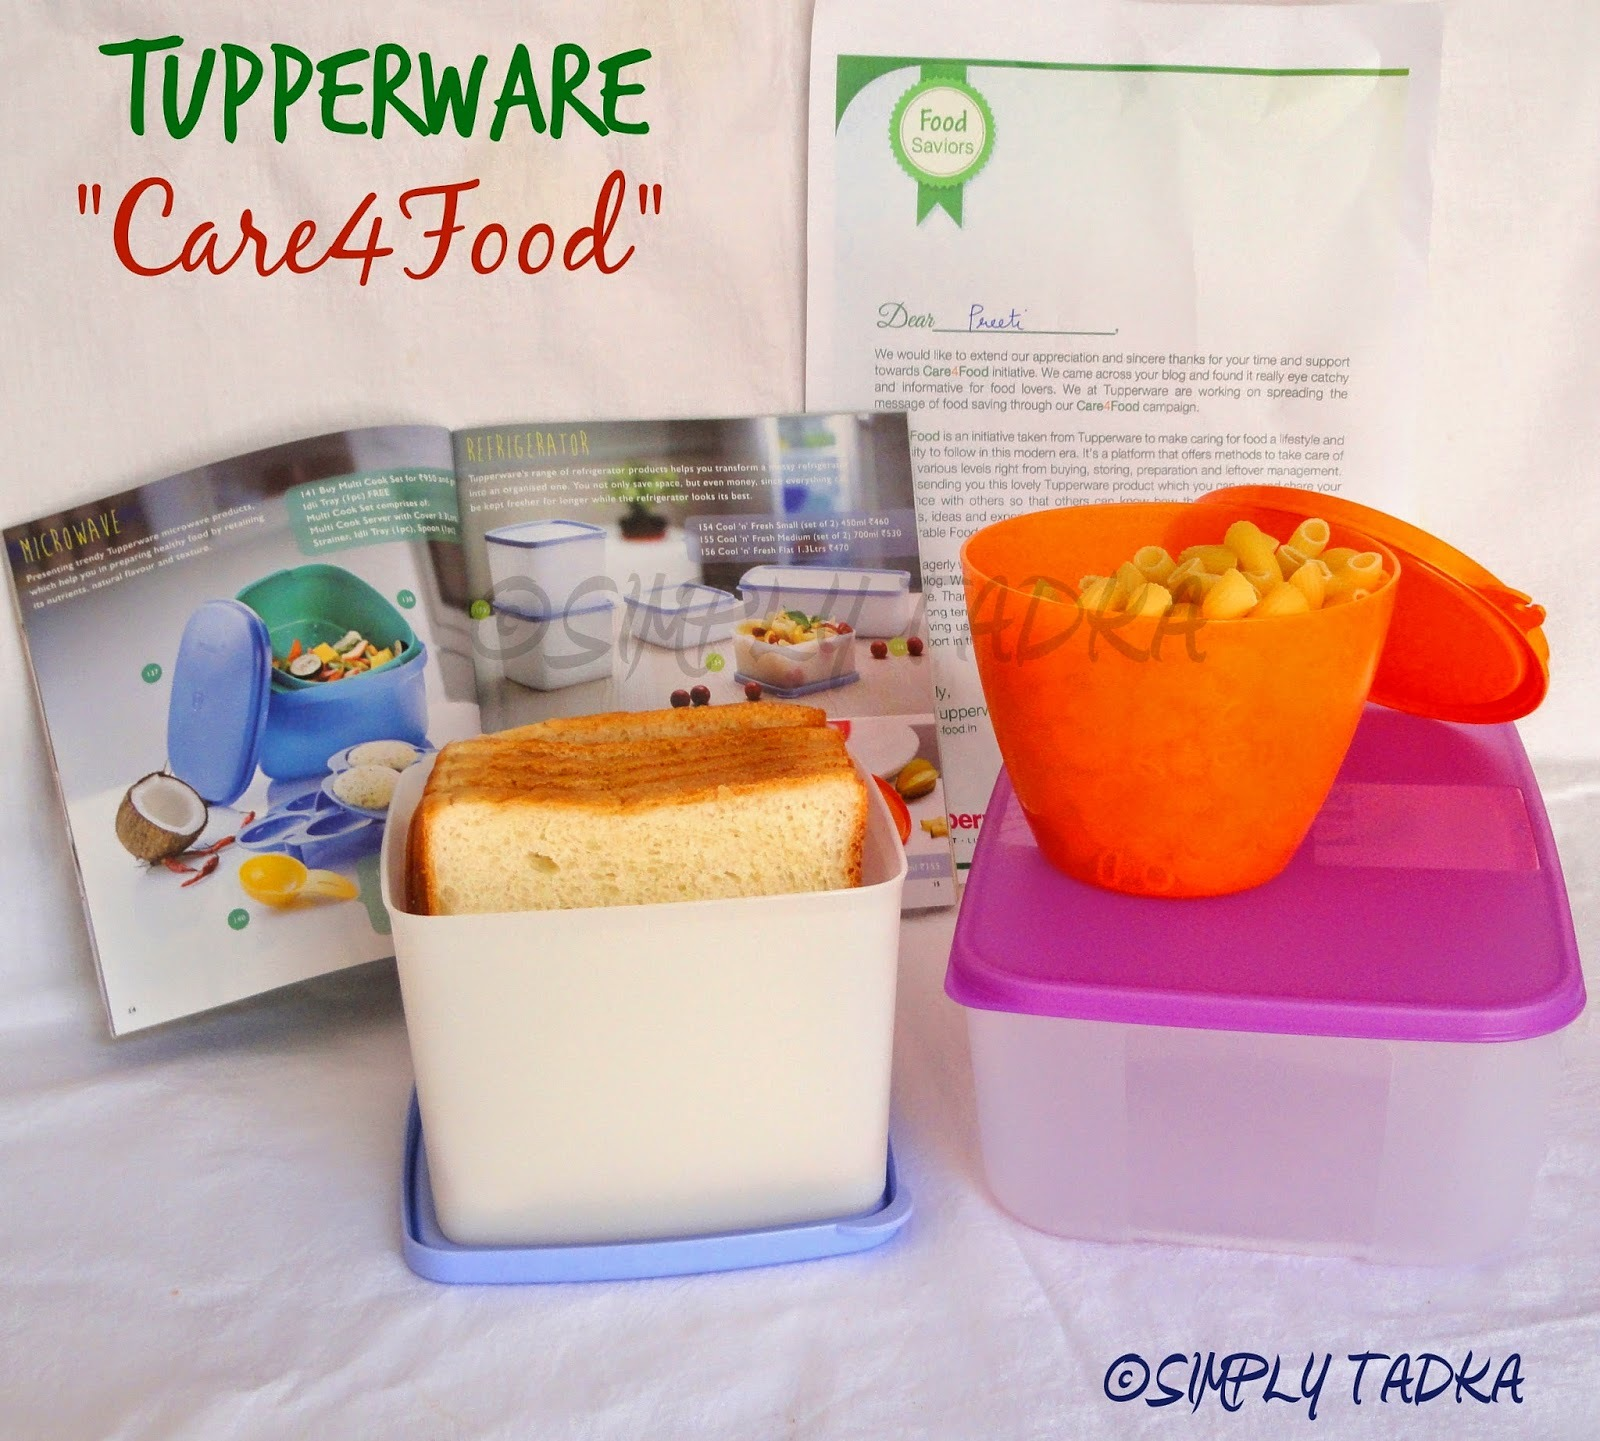 "Tupperware ""Care4Food"" Campaign- Review"